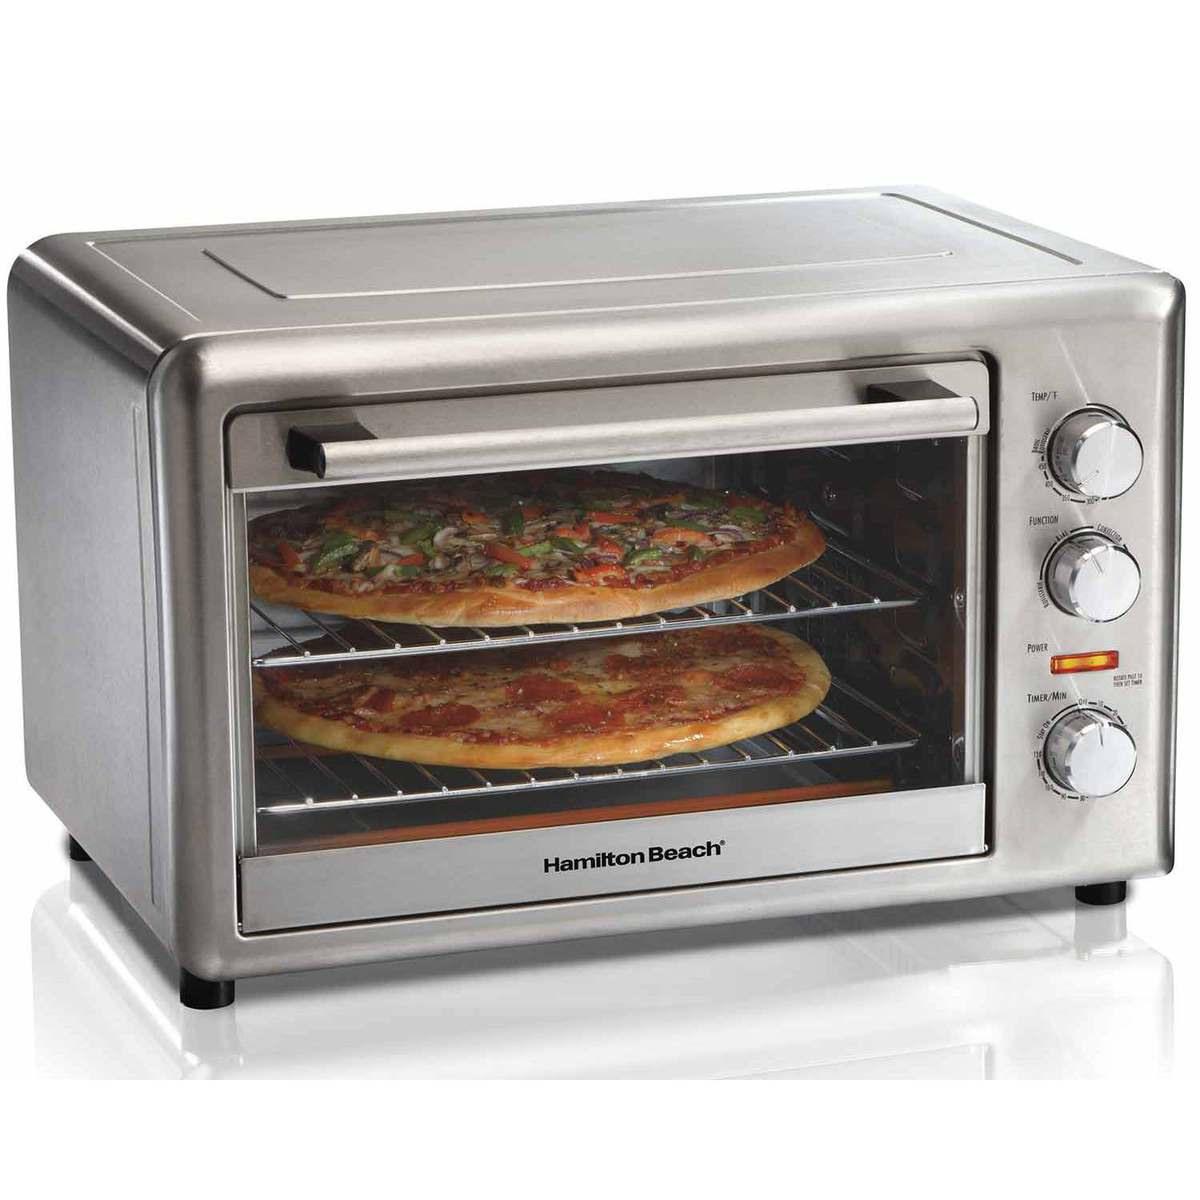 pizza ovens - Countertop Pizza Oven